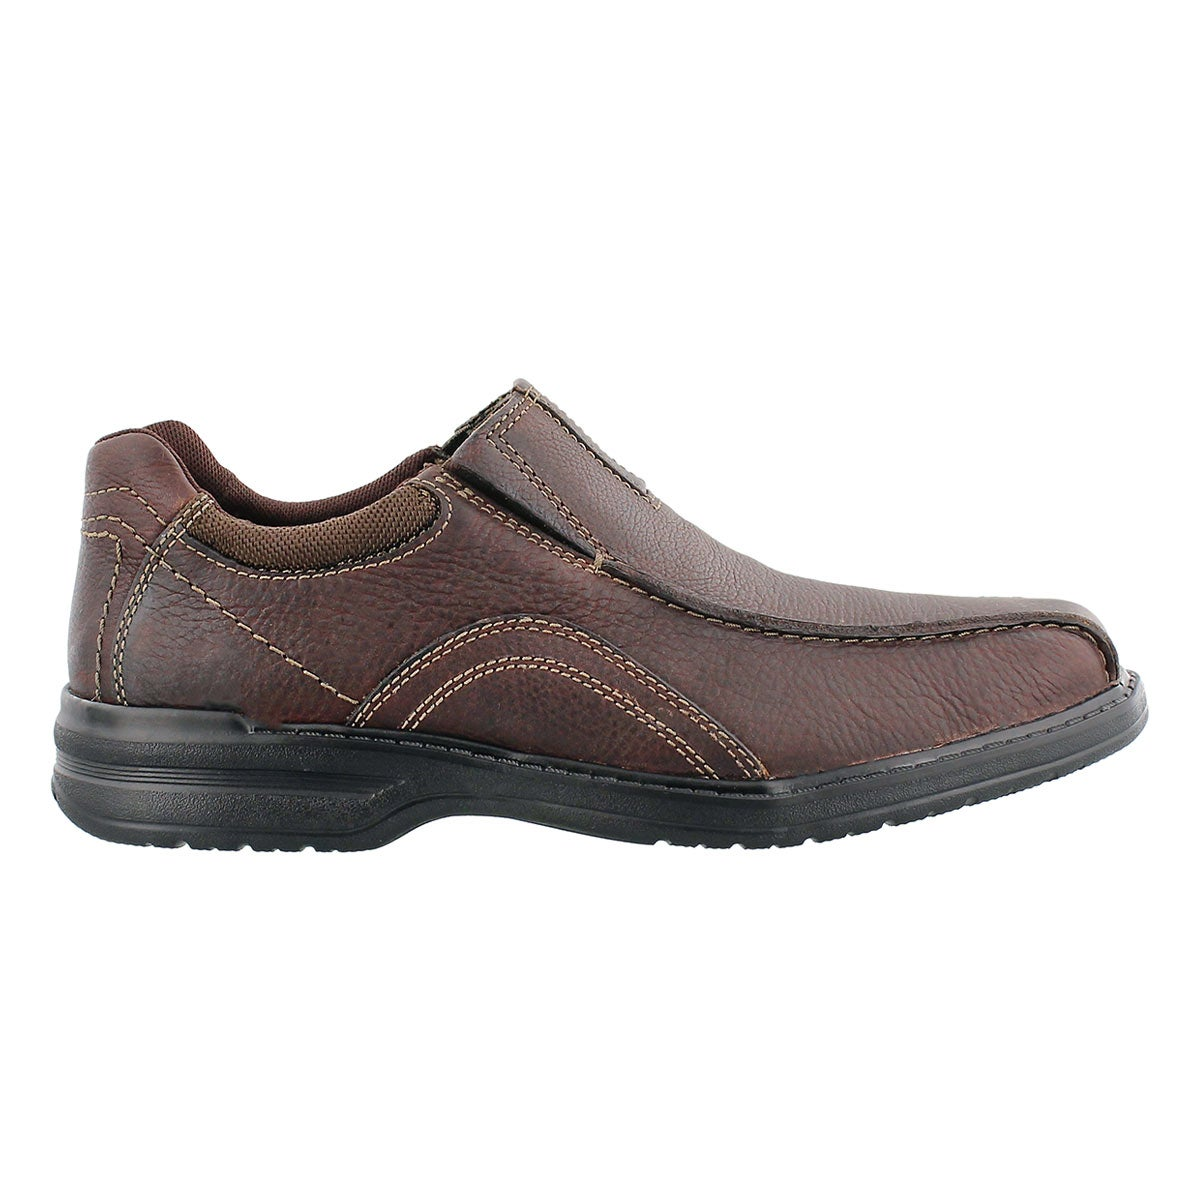 Mns Sherwin Time brown slip on casual